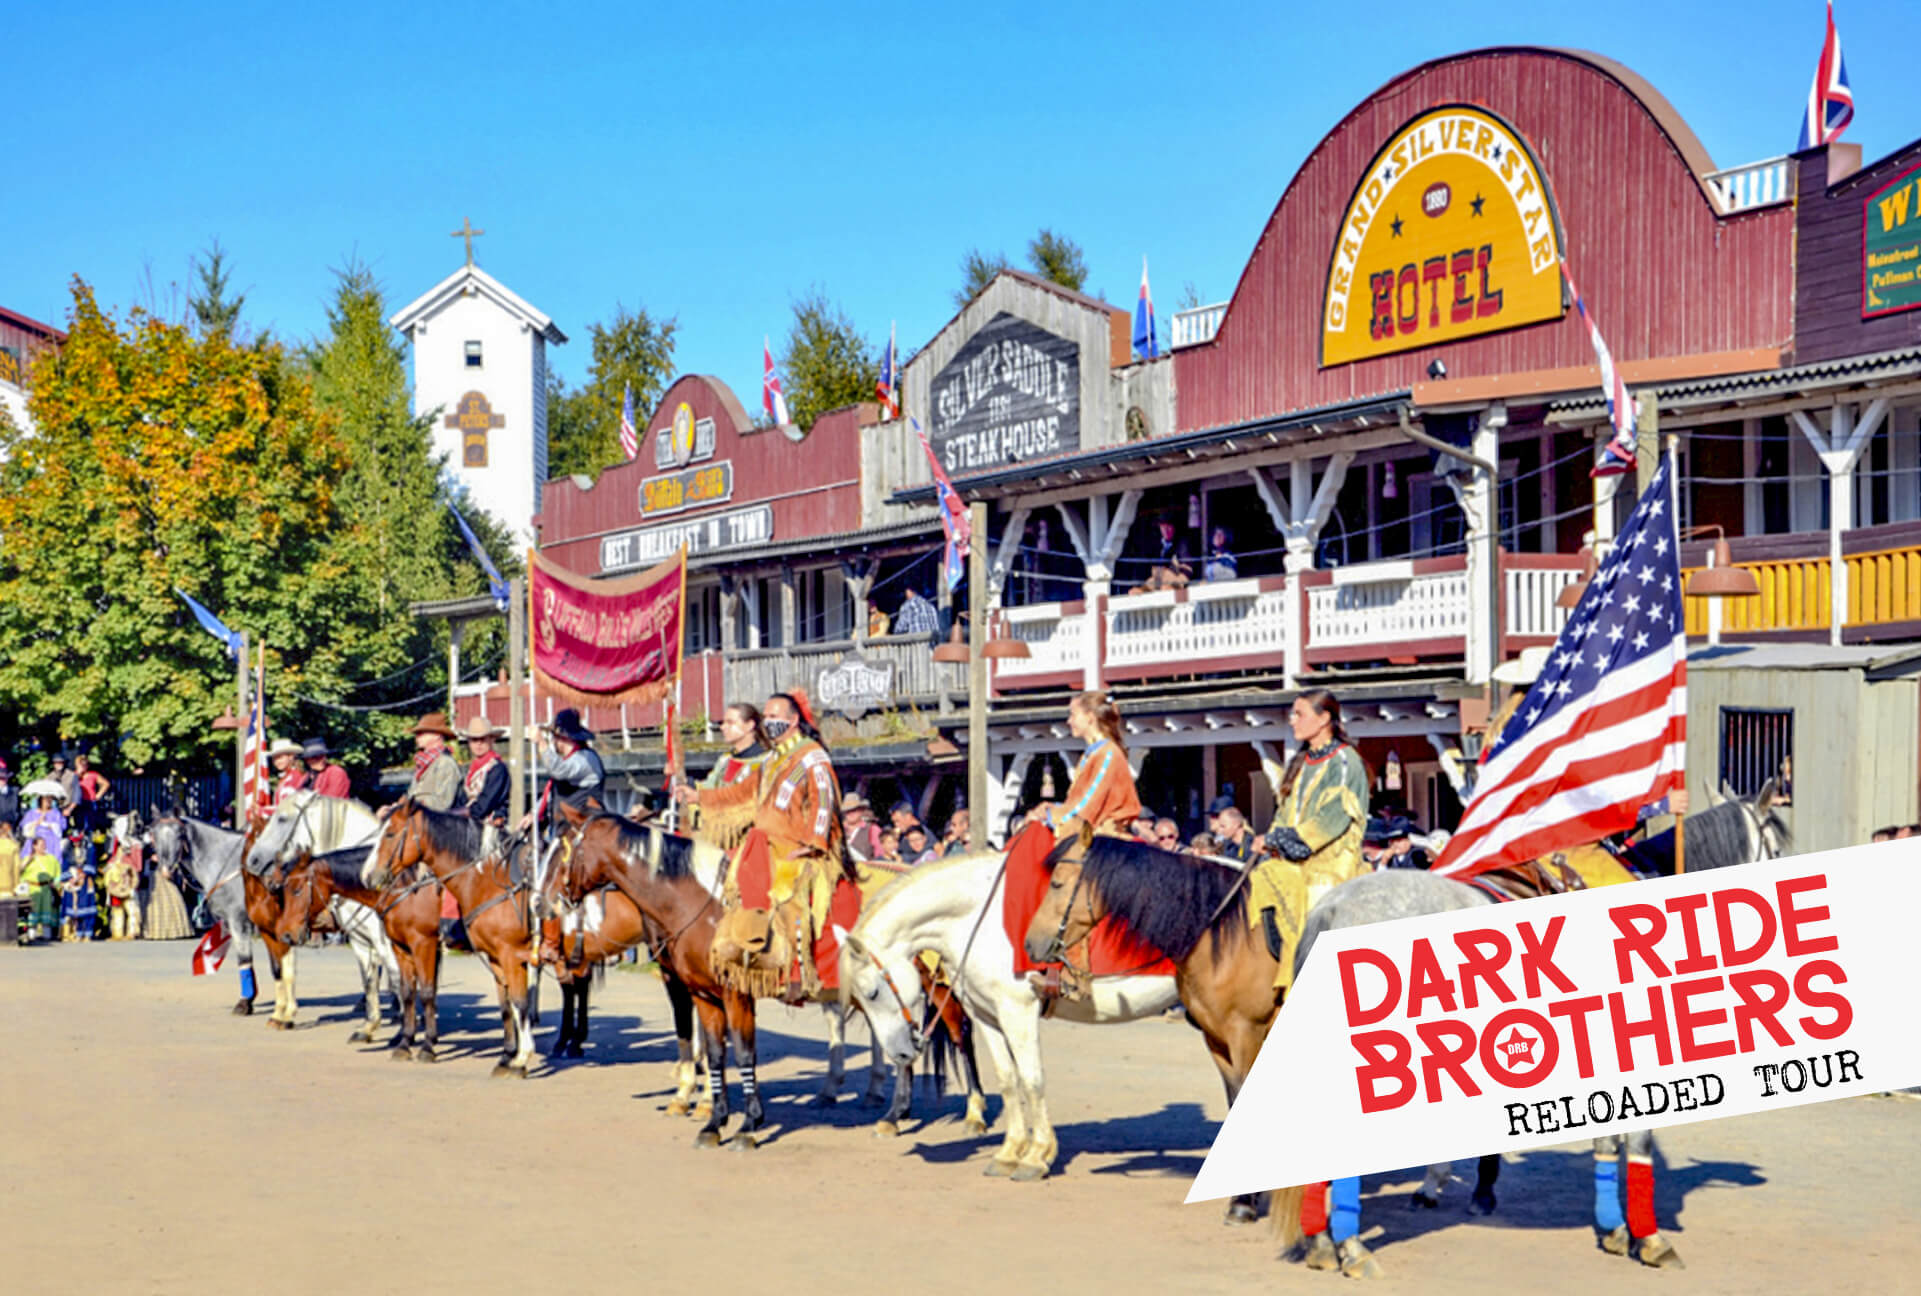 Dark Ride Brothers at Pullman City Harz ⭐ 24 JUN 2019